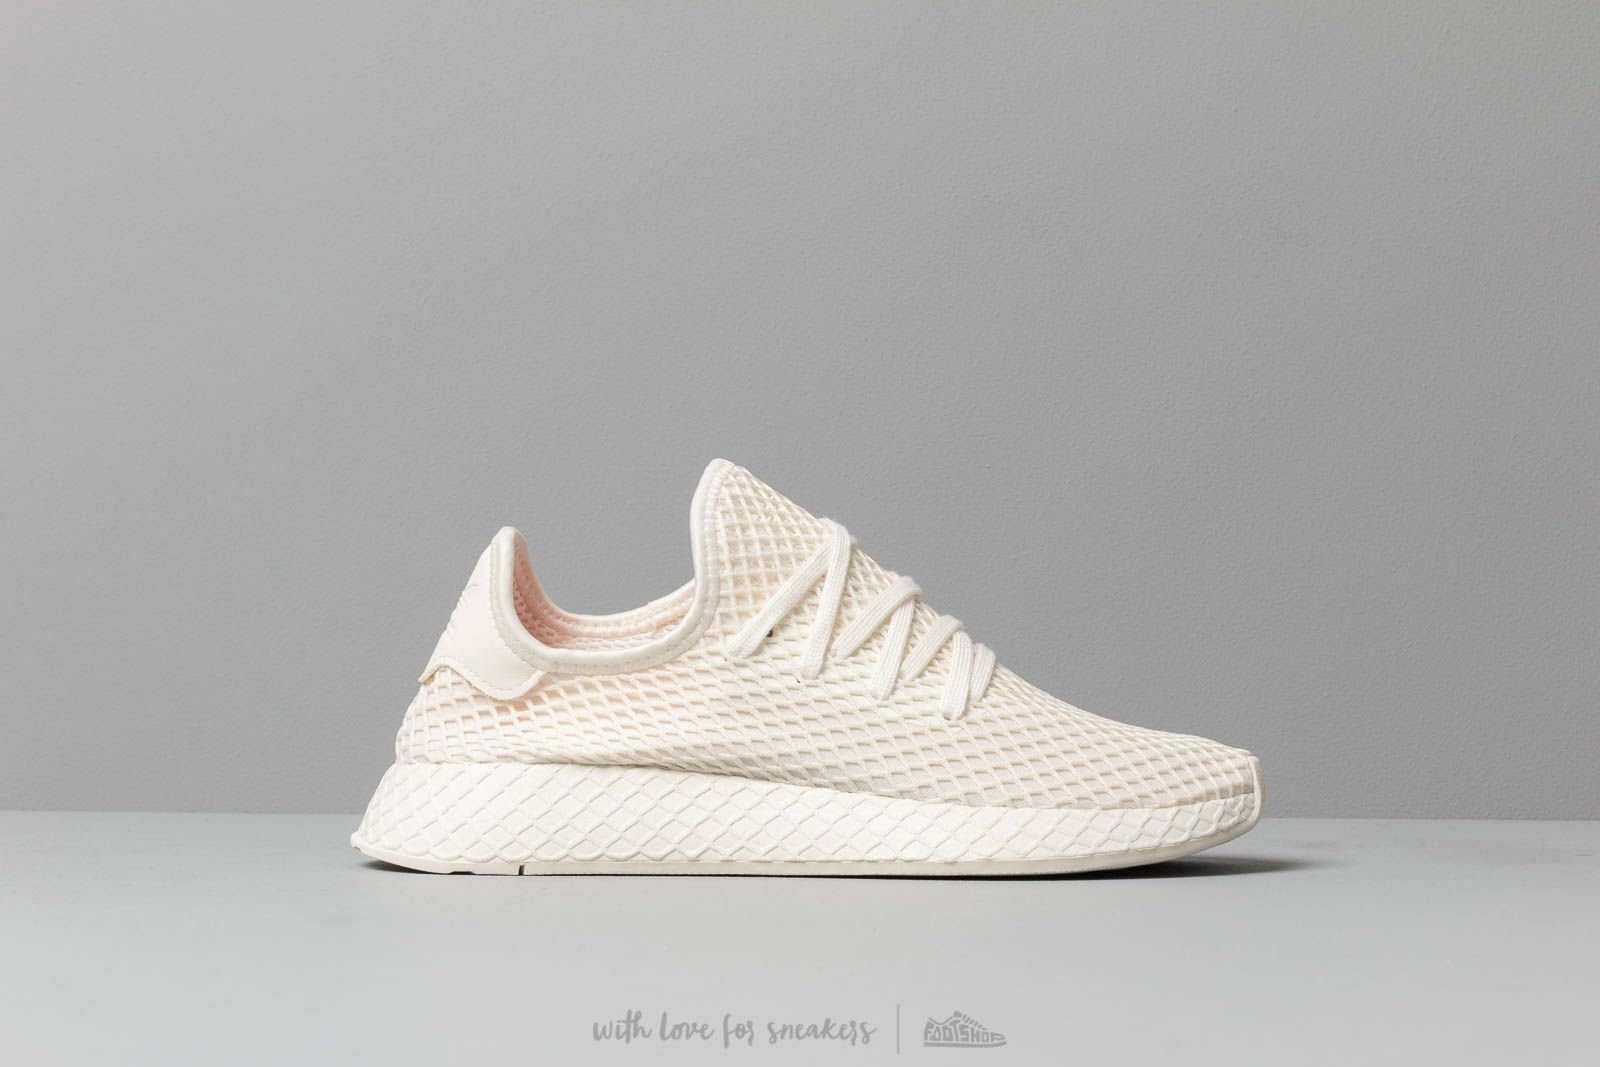 0c930581cd8bb adidas Deerupt Runner Off White  Ftw White  Shored at a great price  108 buy